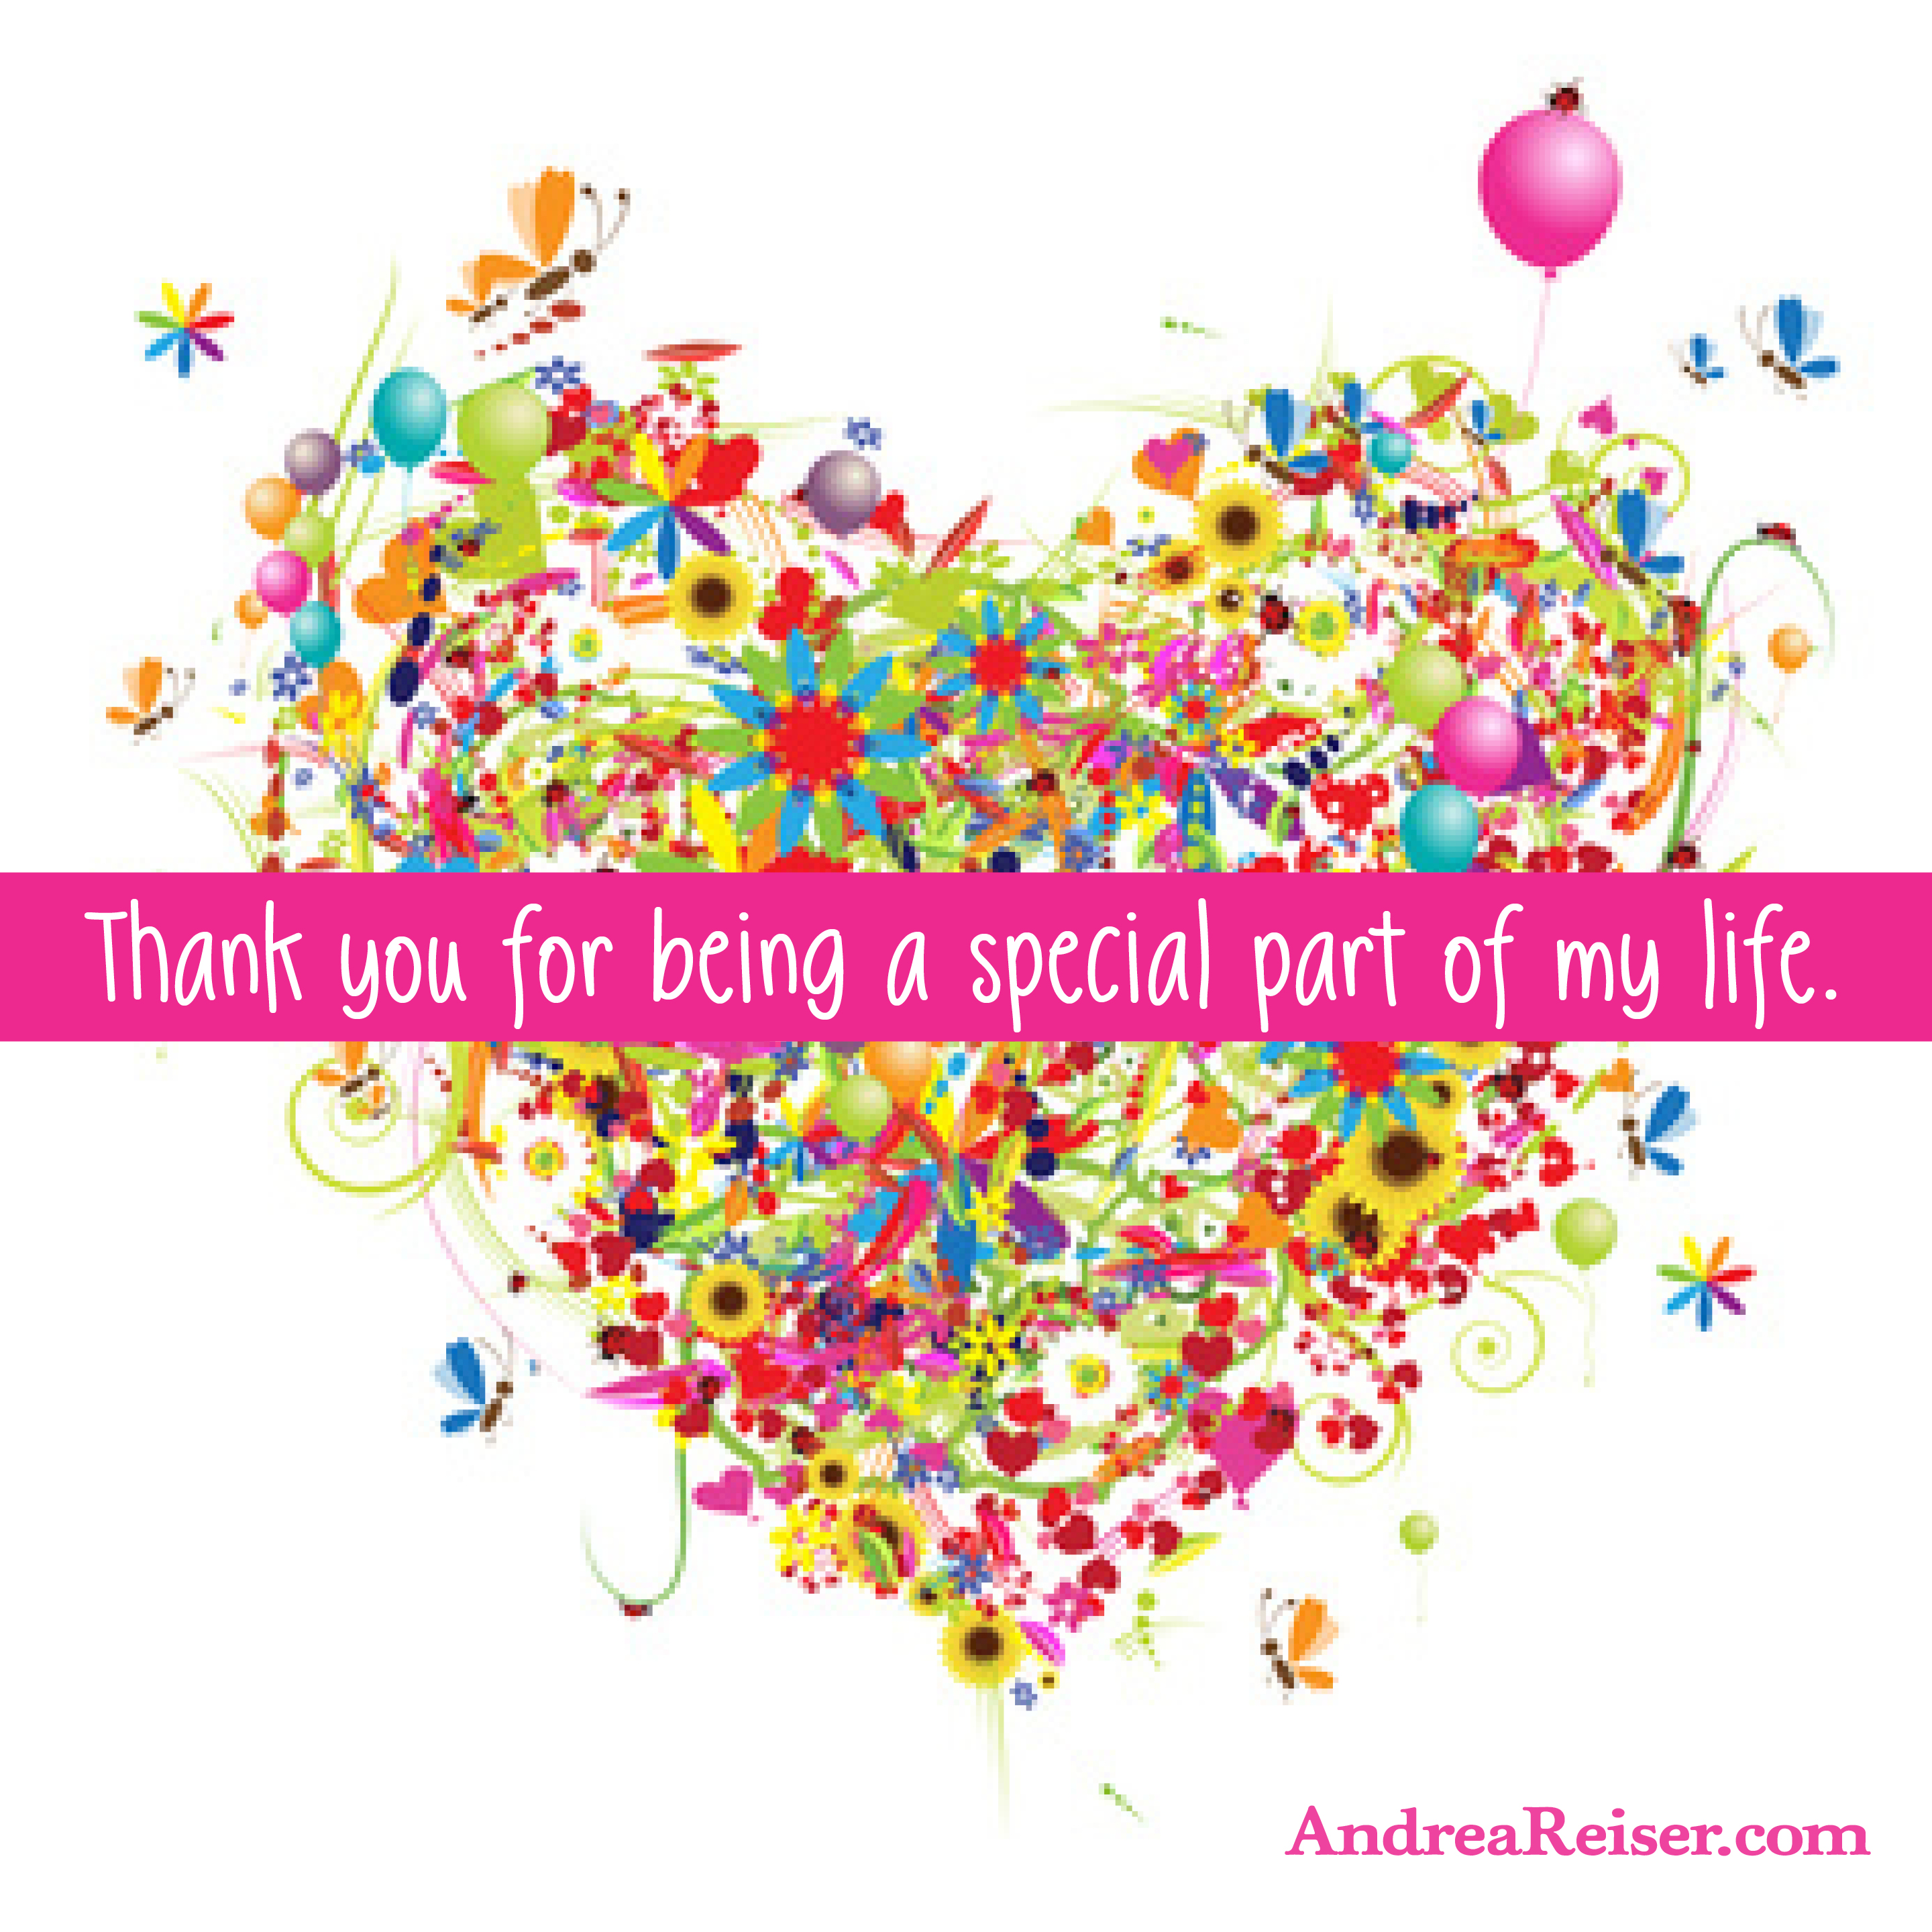 Being a part clipart graphic black and white stock Thank you for being a special part of my life - Andrea Reiser Andrea ... graphic black and white stock